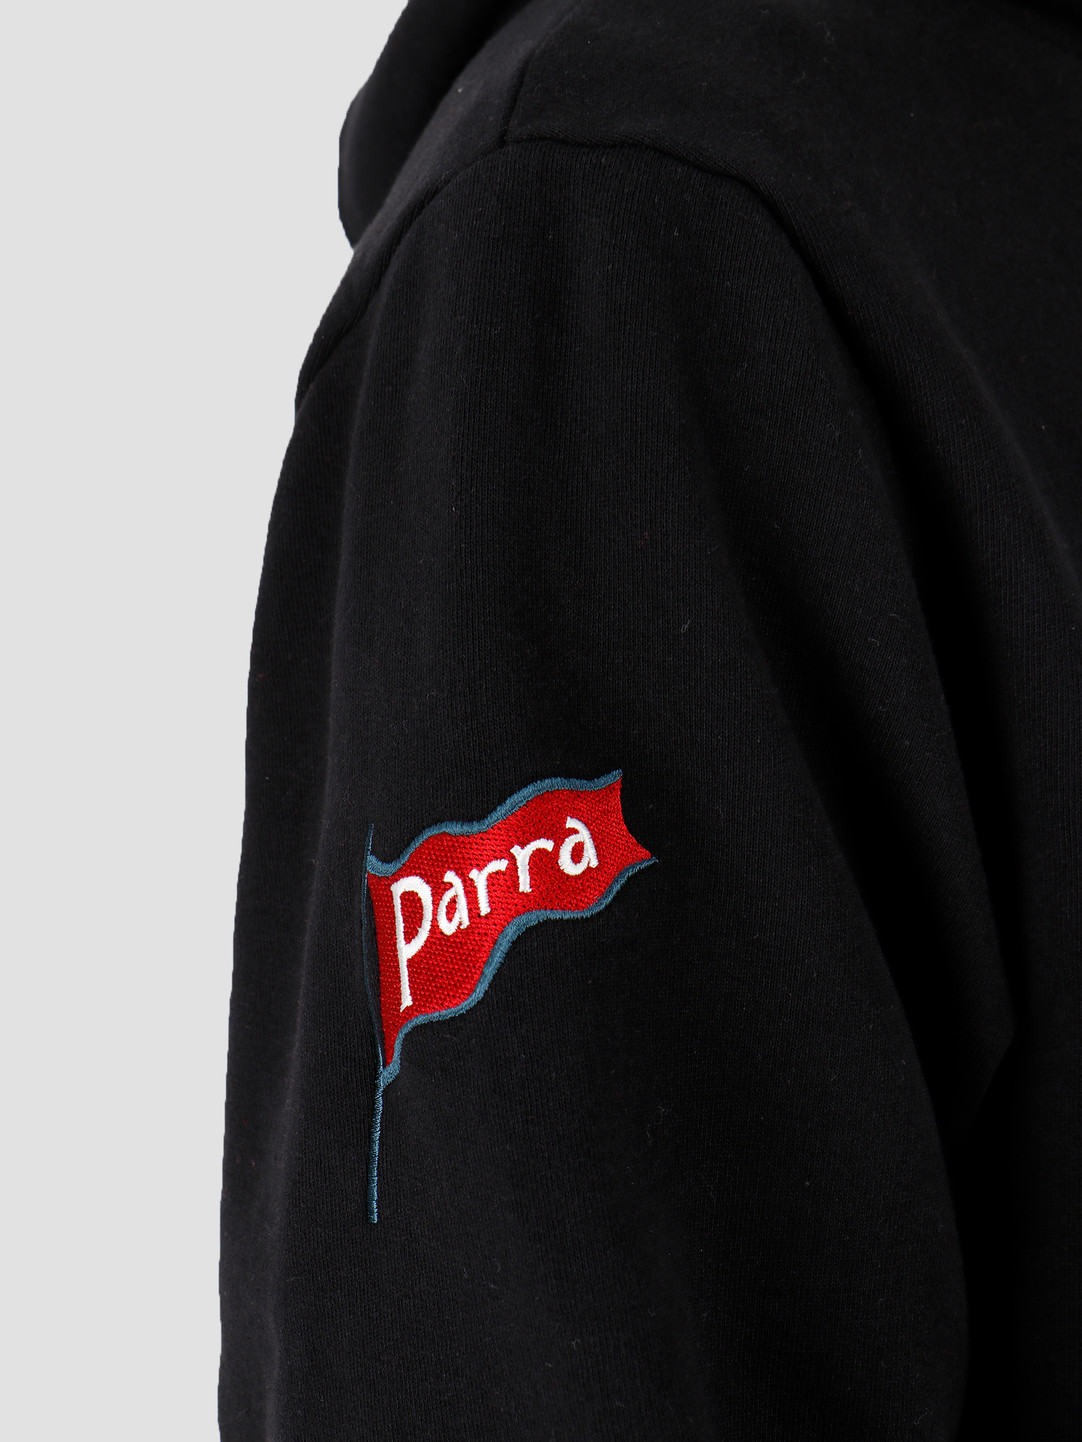 By Parra By Parra 3Rd Prize Cup Winner Hooded Sweater Black 42770